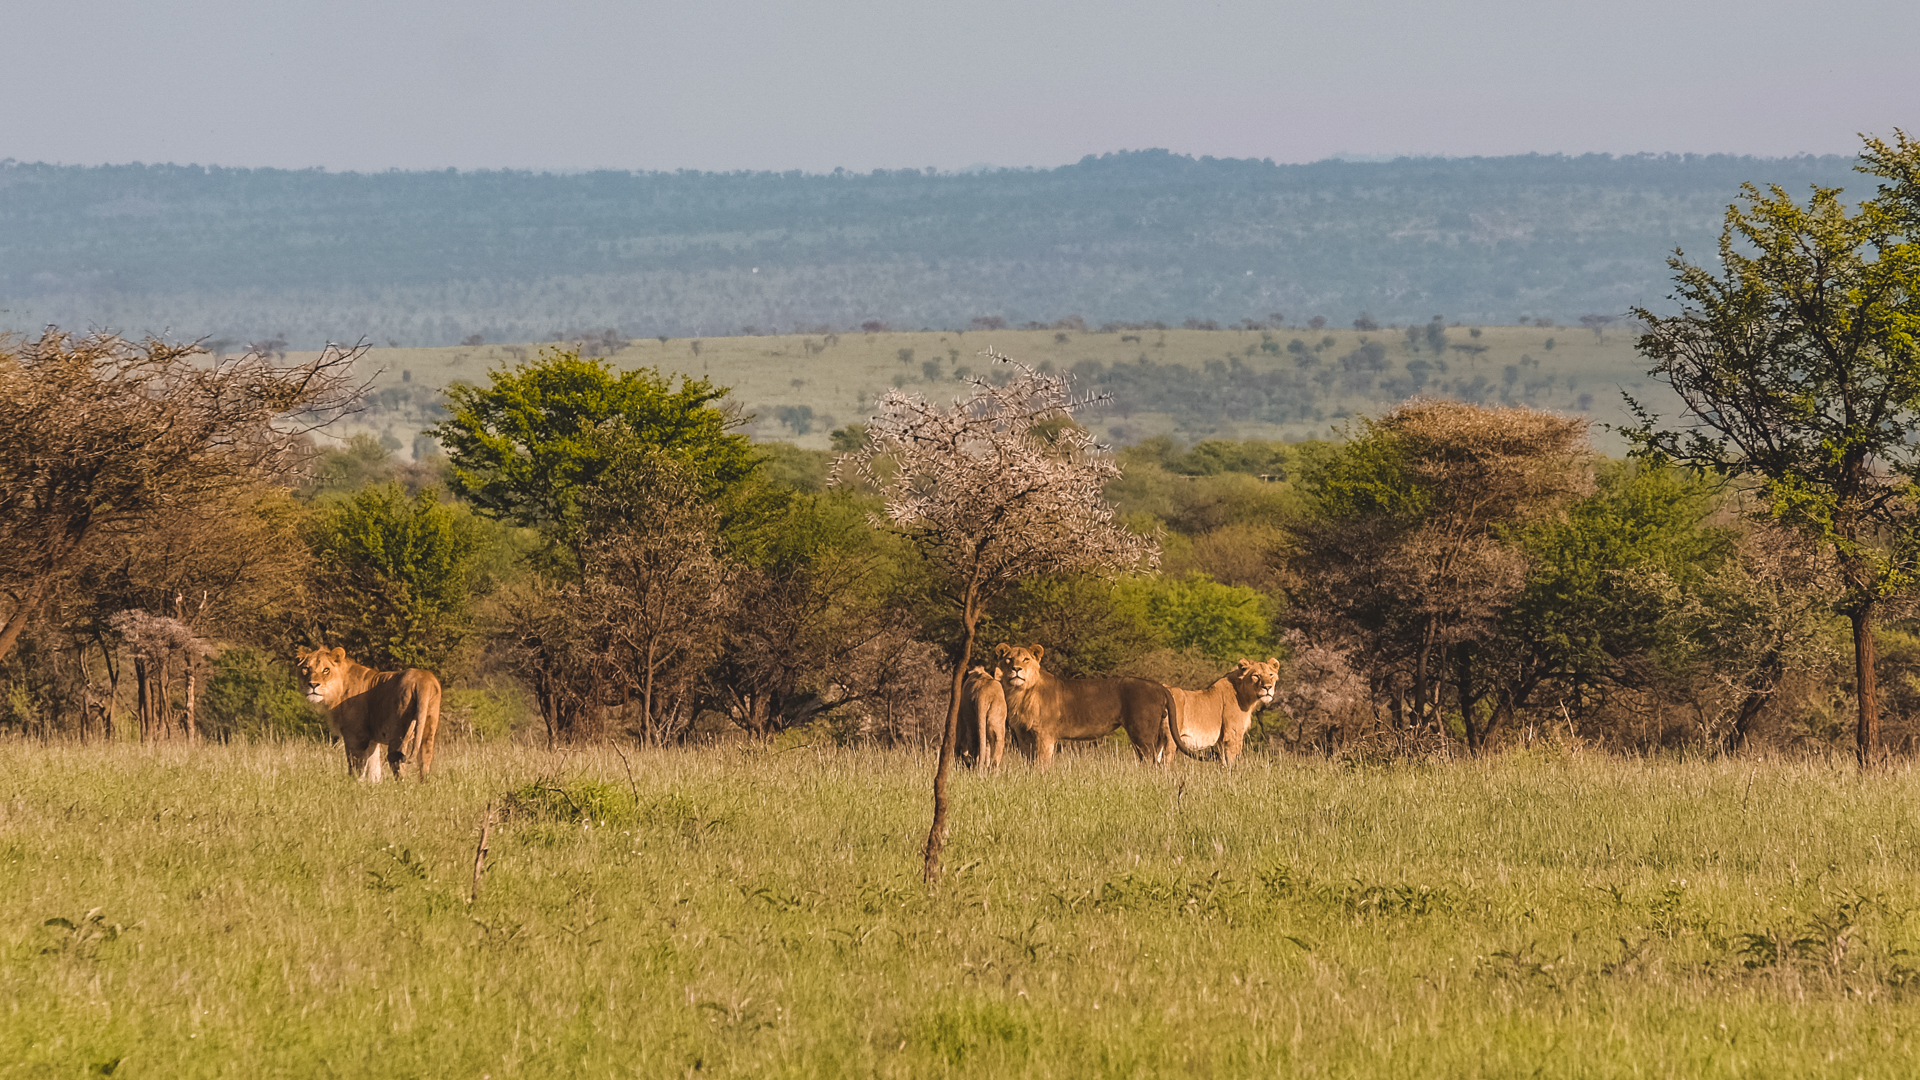 Four female lions checking us out from a distance in the Serengeti National Park, Tanzania